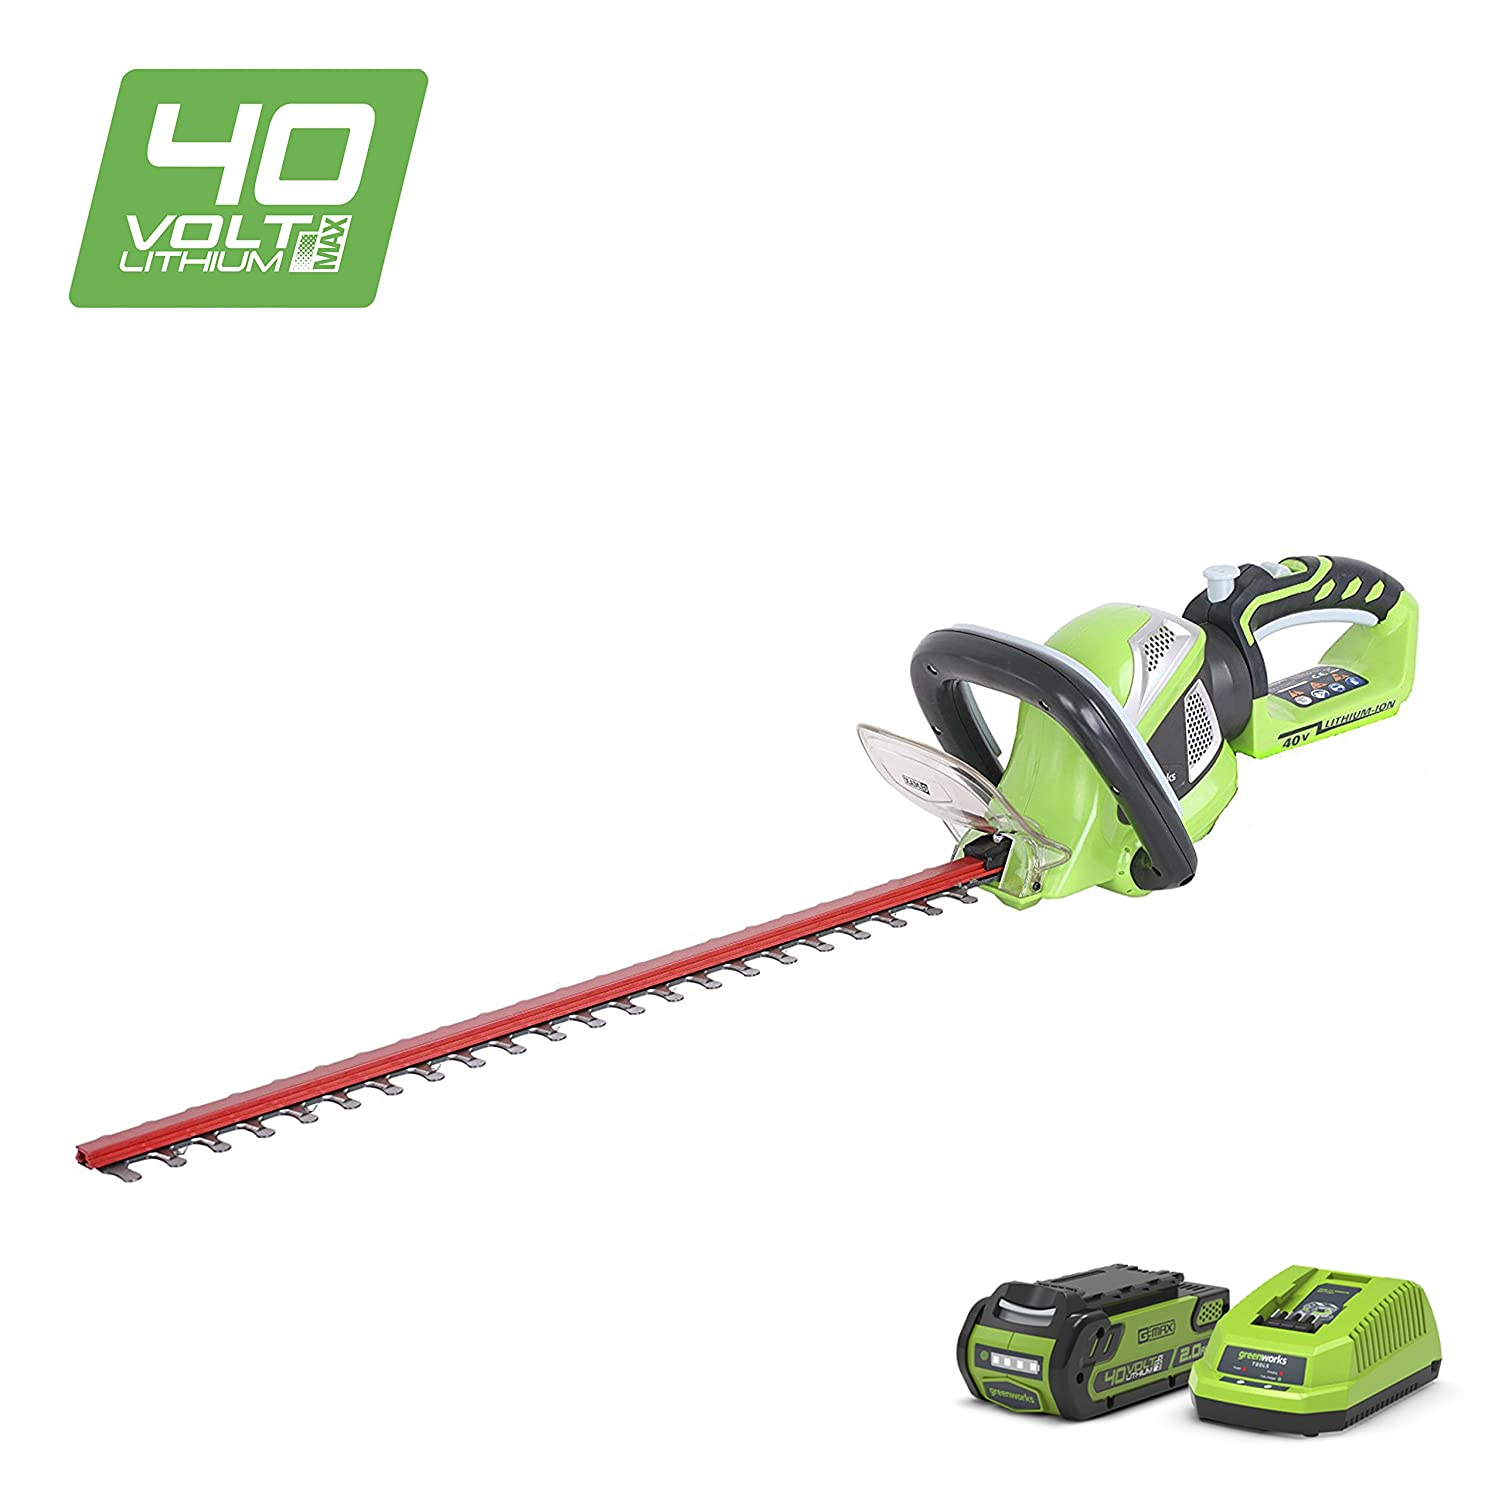 40V Akku-hedge trimmer - incl. battery pack and charger Greenworks Tools 22637TVA